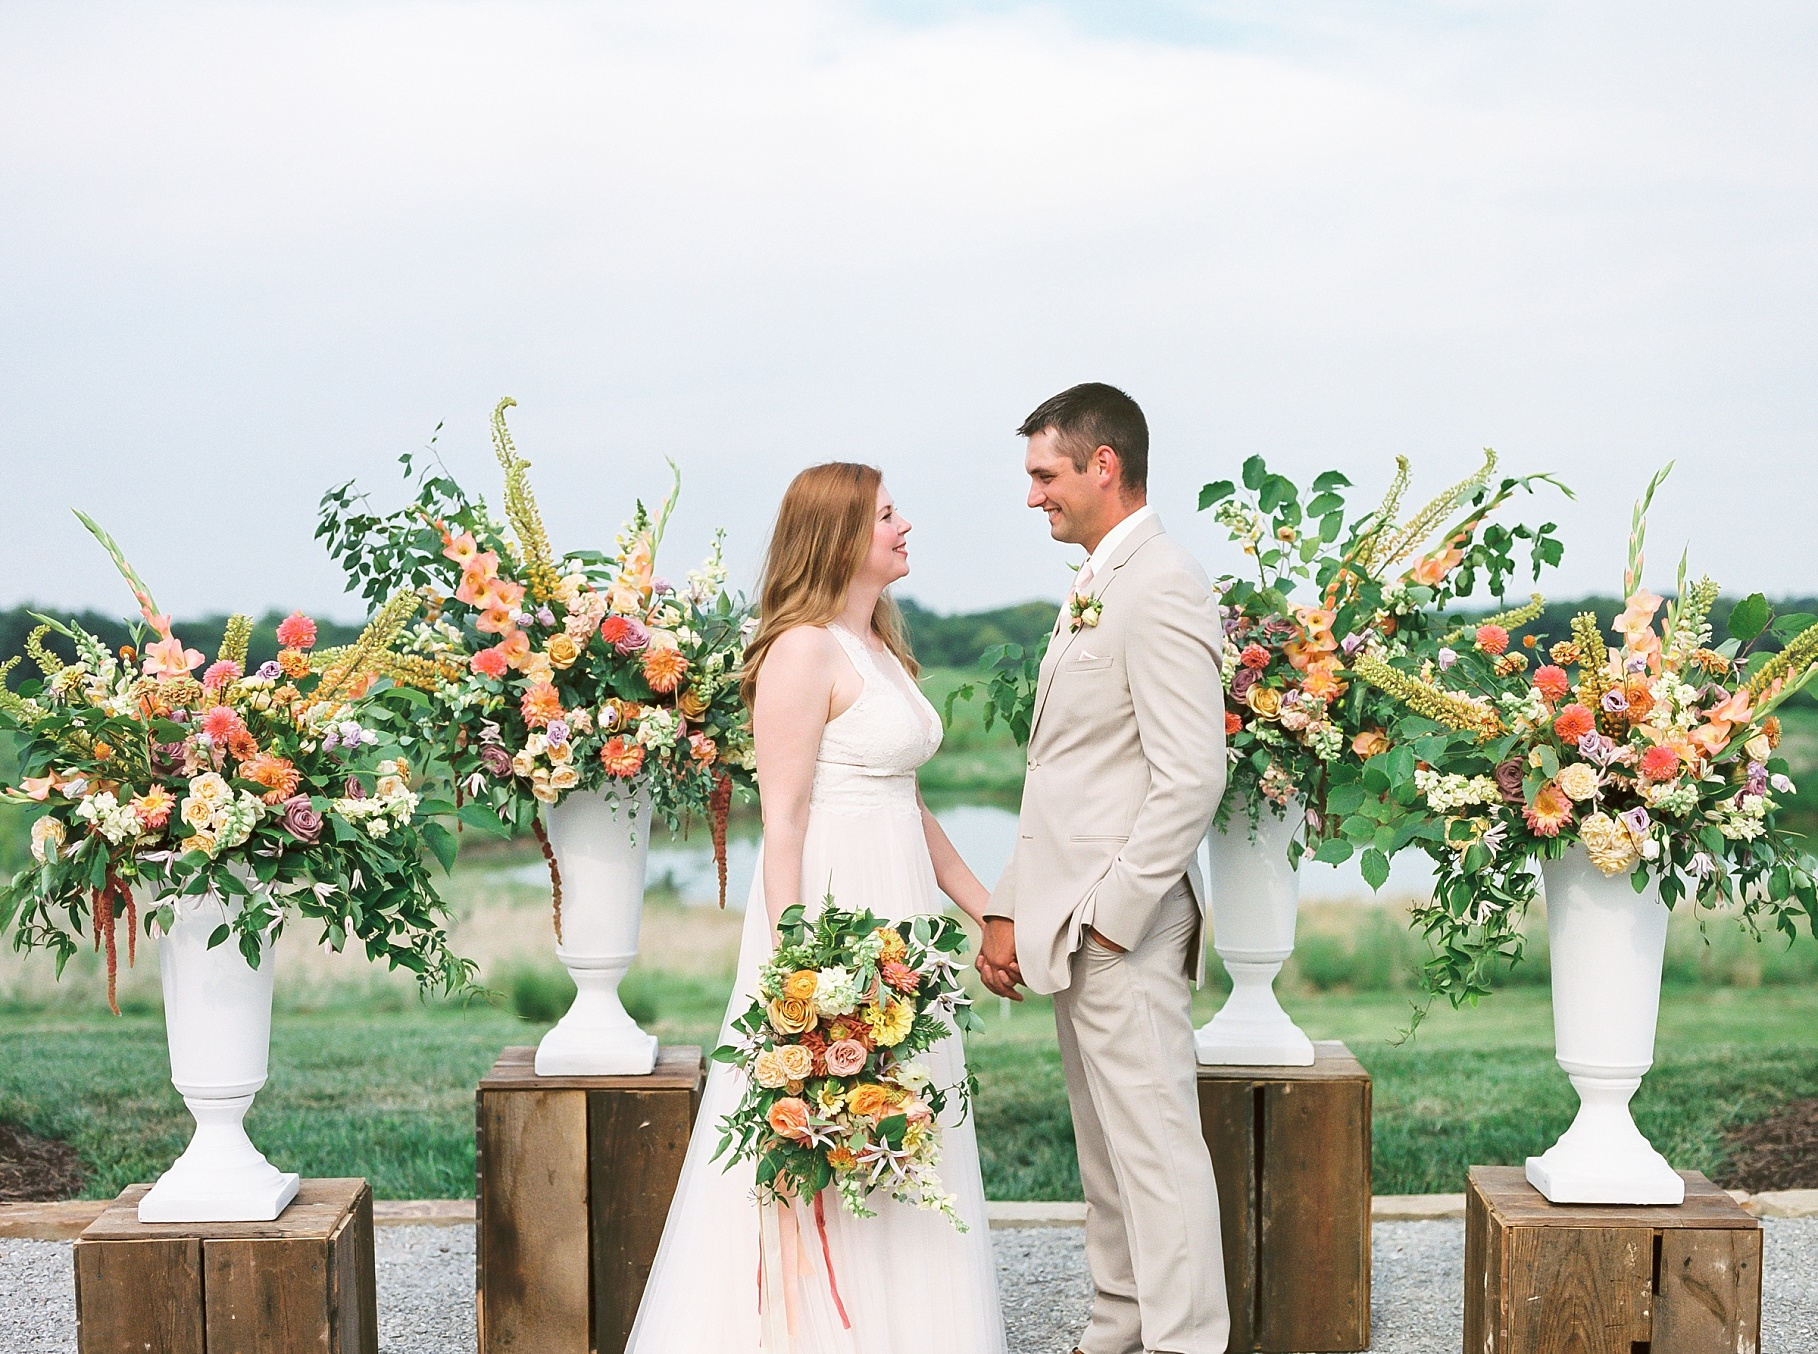 Late Summer Wedding With Pastel Toned Soiree at Blue Bell Farm by Kelsi Kliethermes Photography Best Columbia Missouri Wedding Photographer_0020.jpg